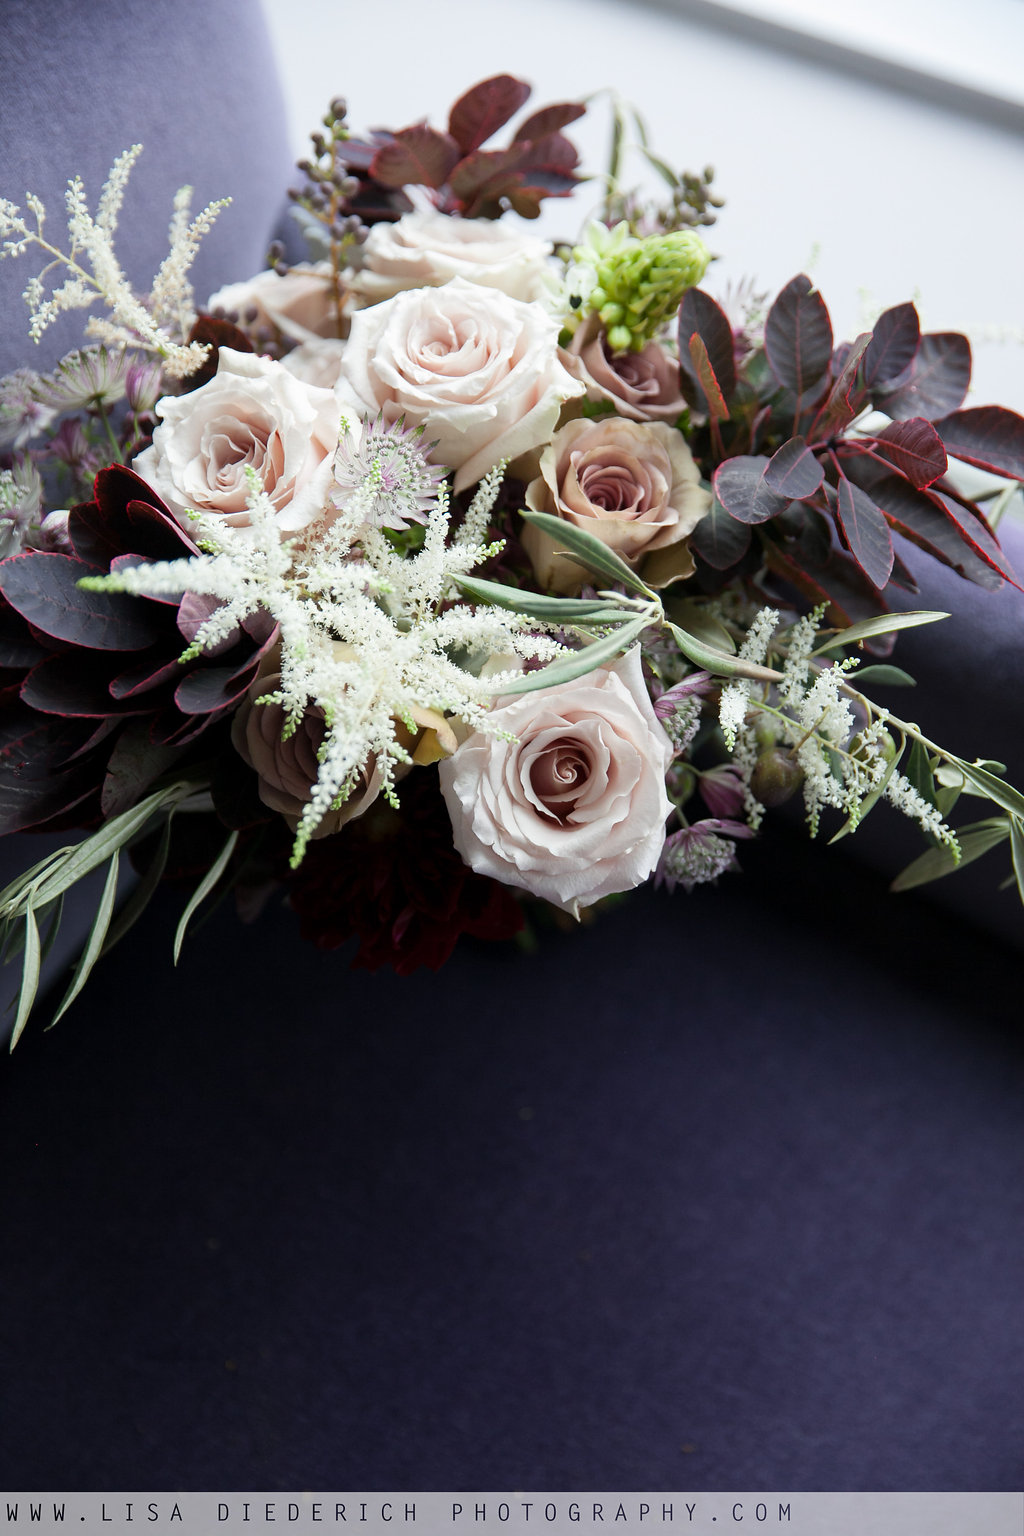 Flowers by Feur Inc, Photography by Lisa Diederich Photography